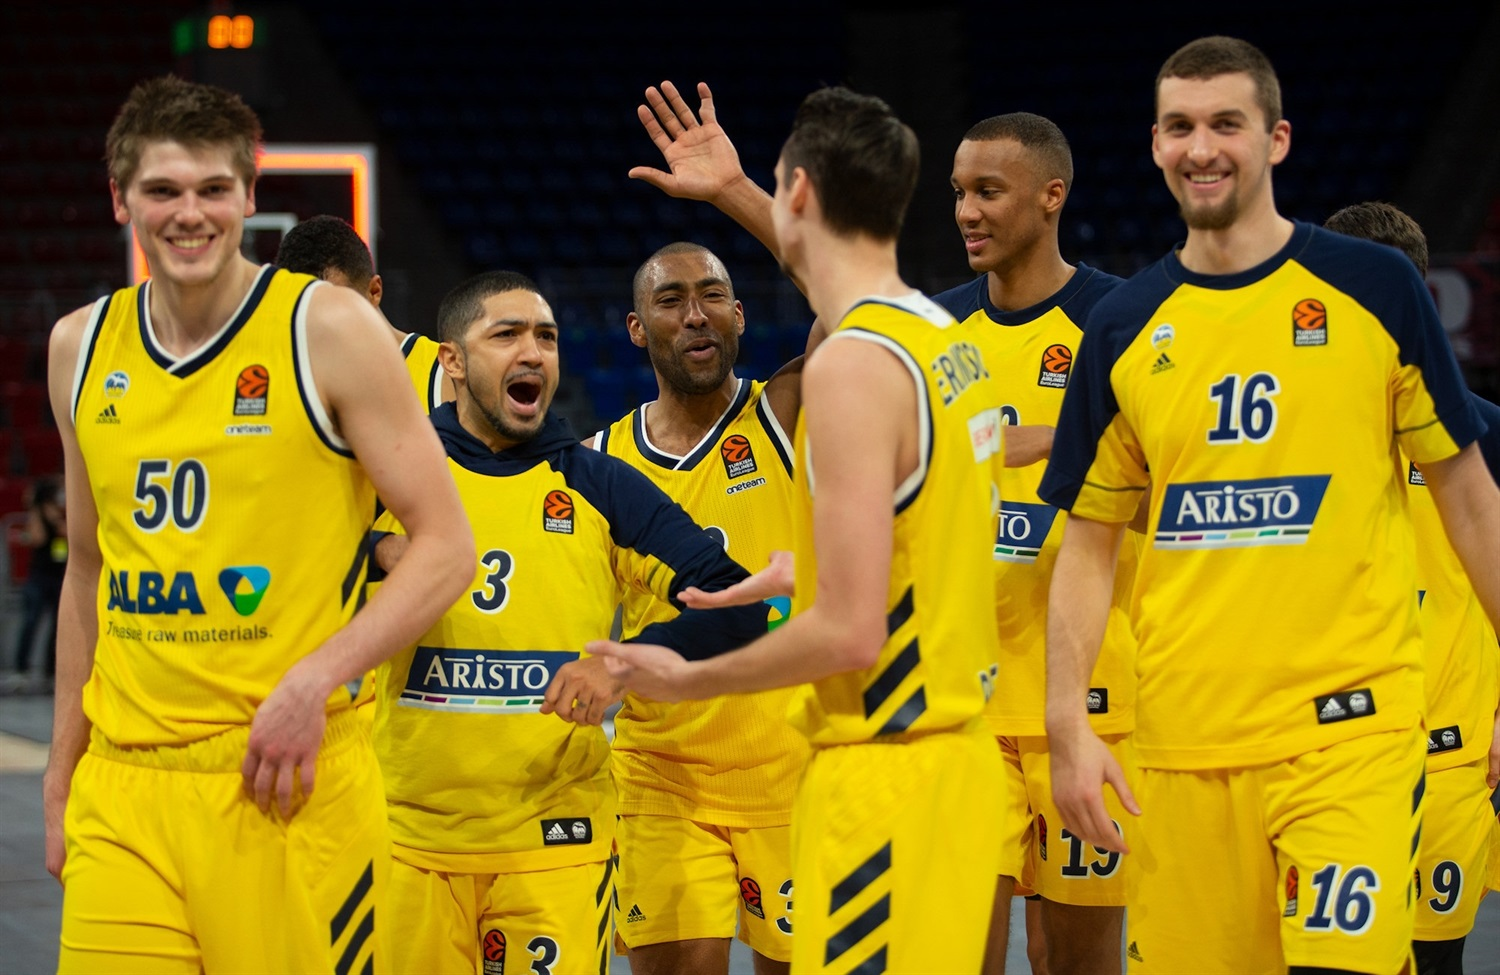 ALBA Berlin celebrates - EB20